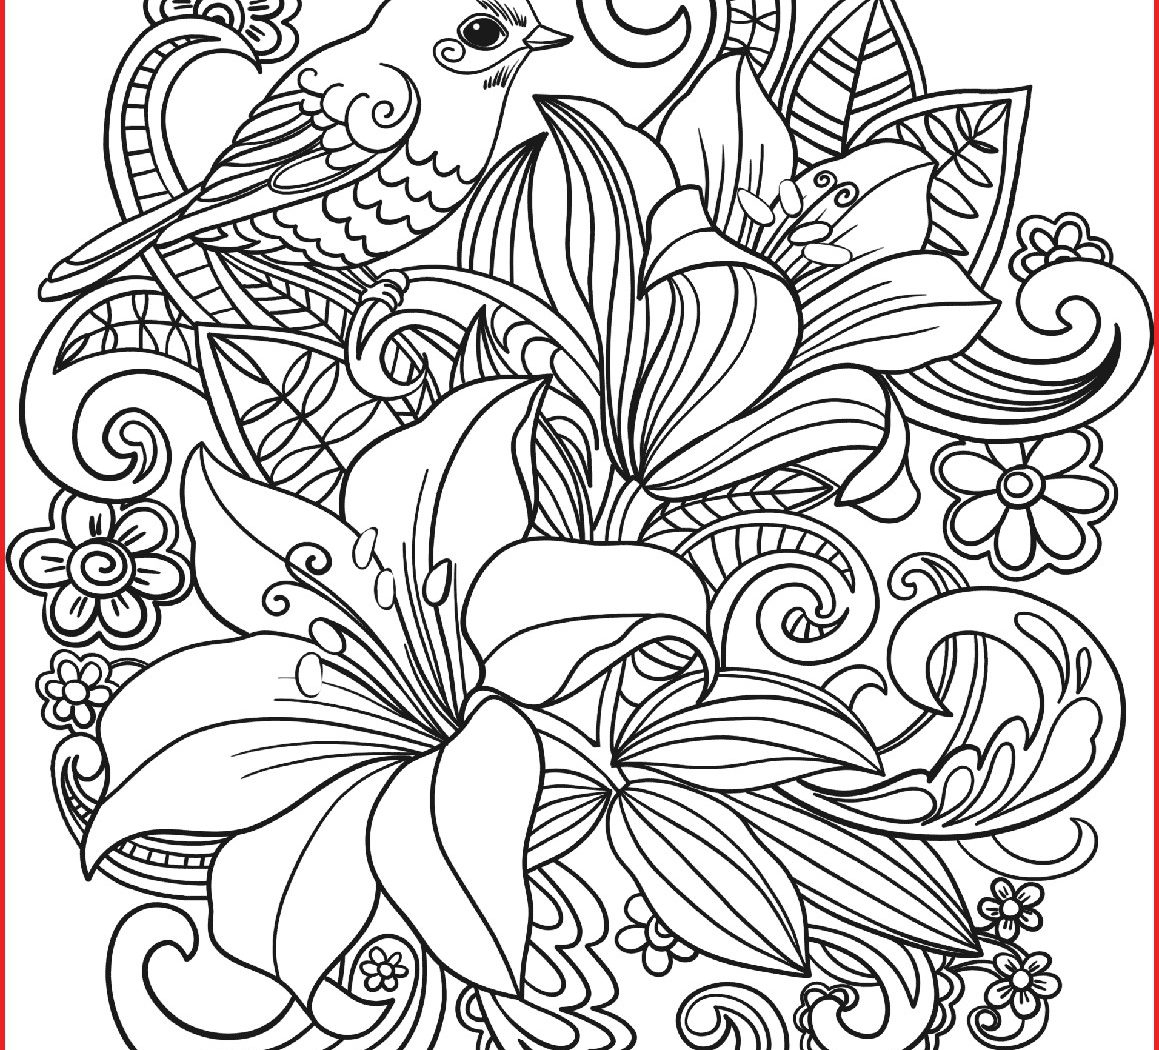 Spring Flowers Coloring Pages Popular Flower Coloring Pages Printable For Kids Valid Sheetshoolers